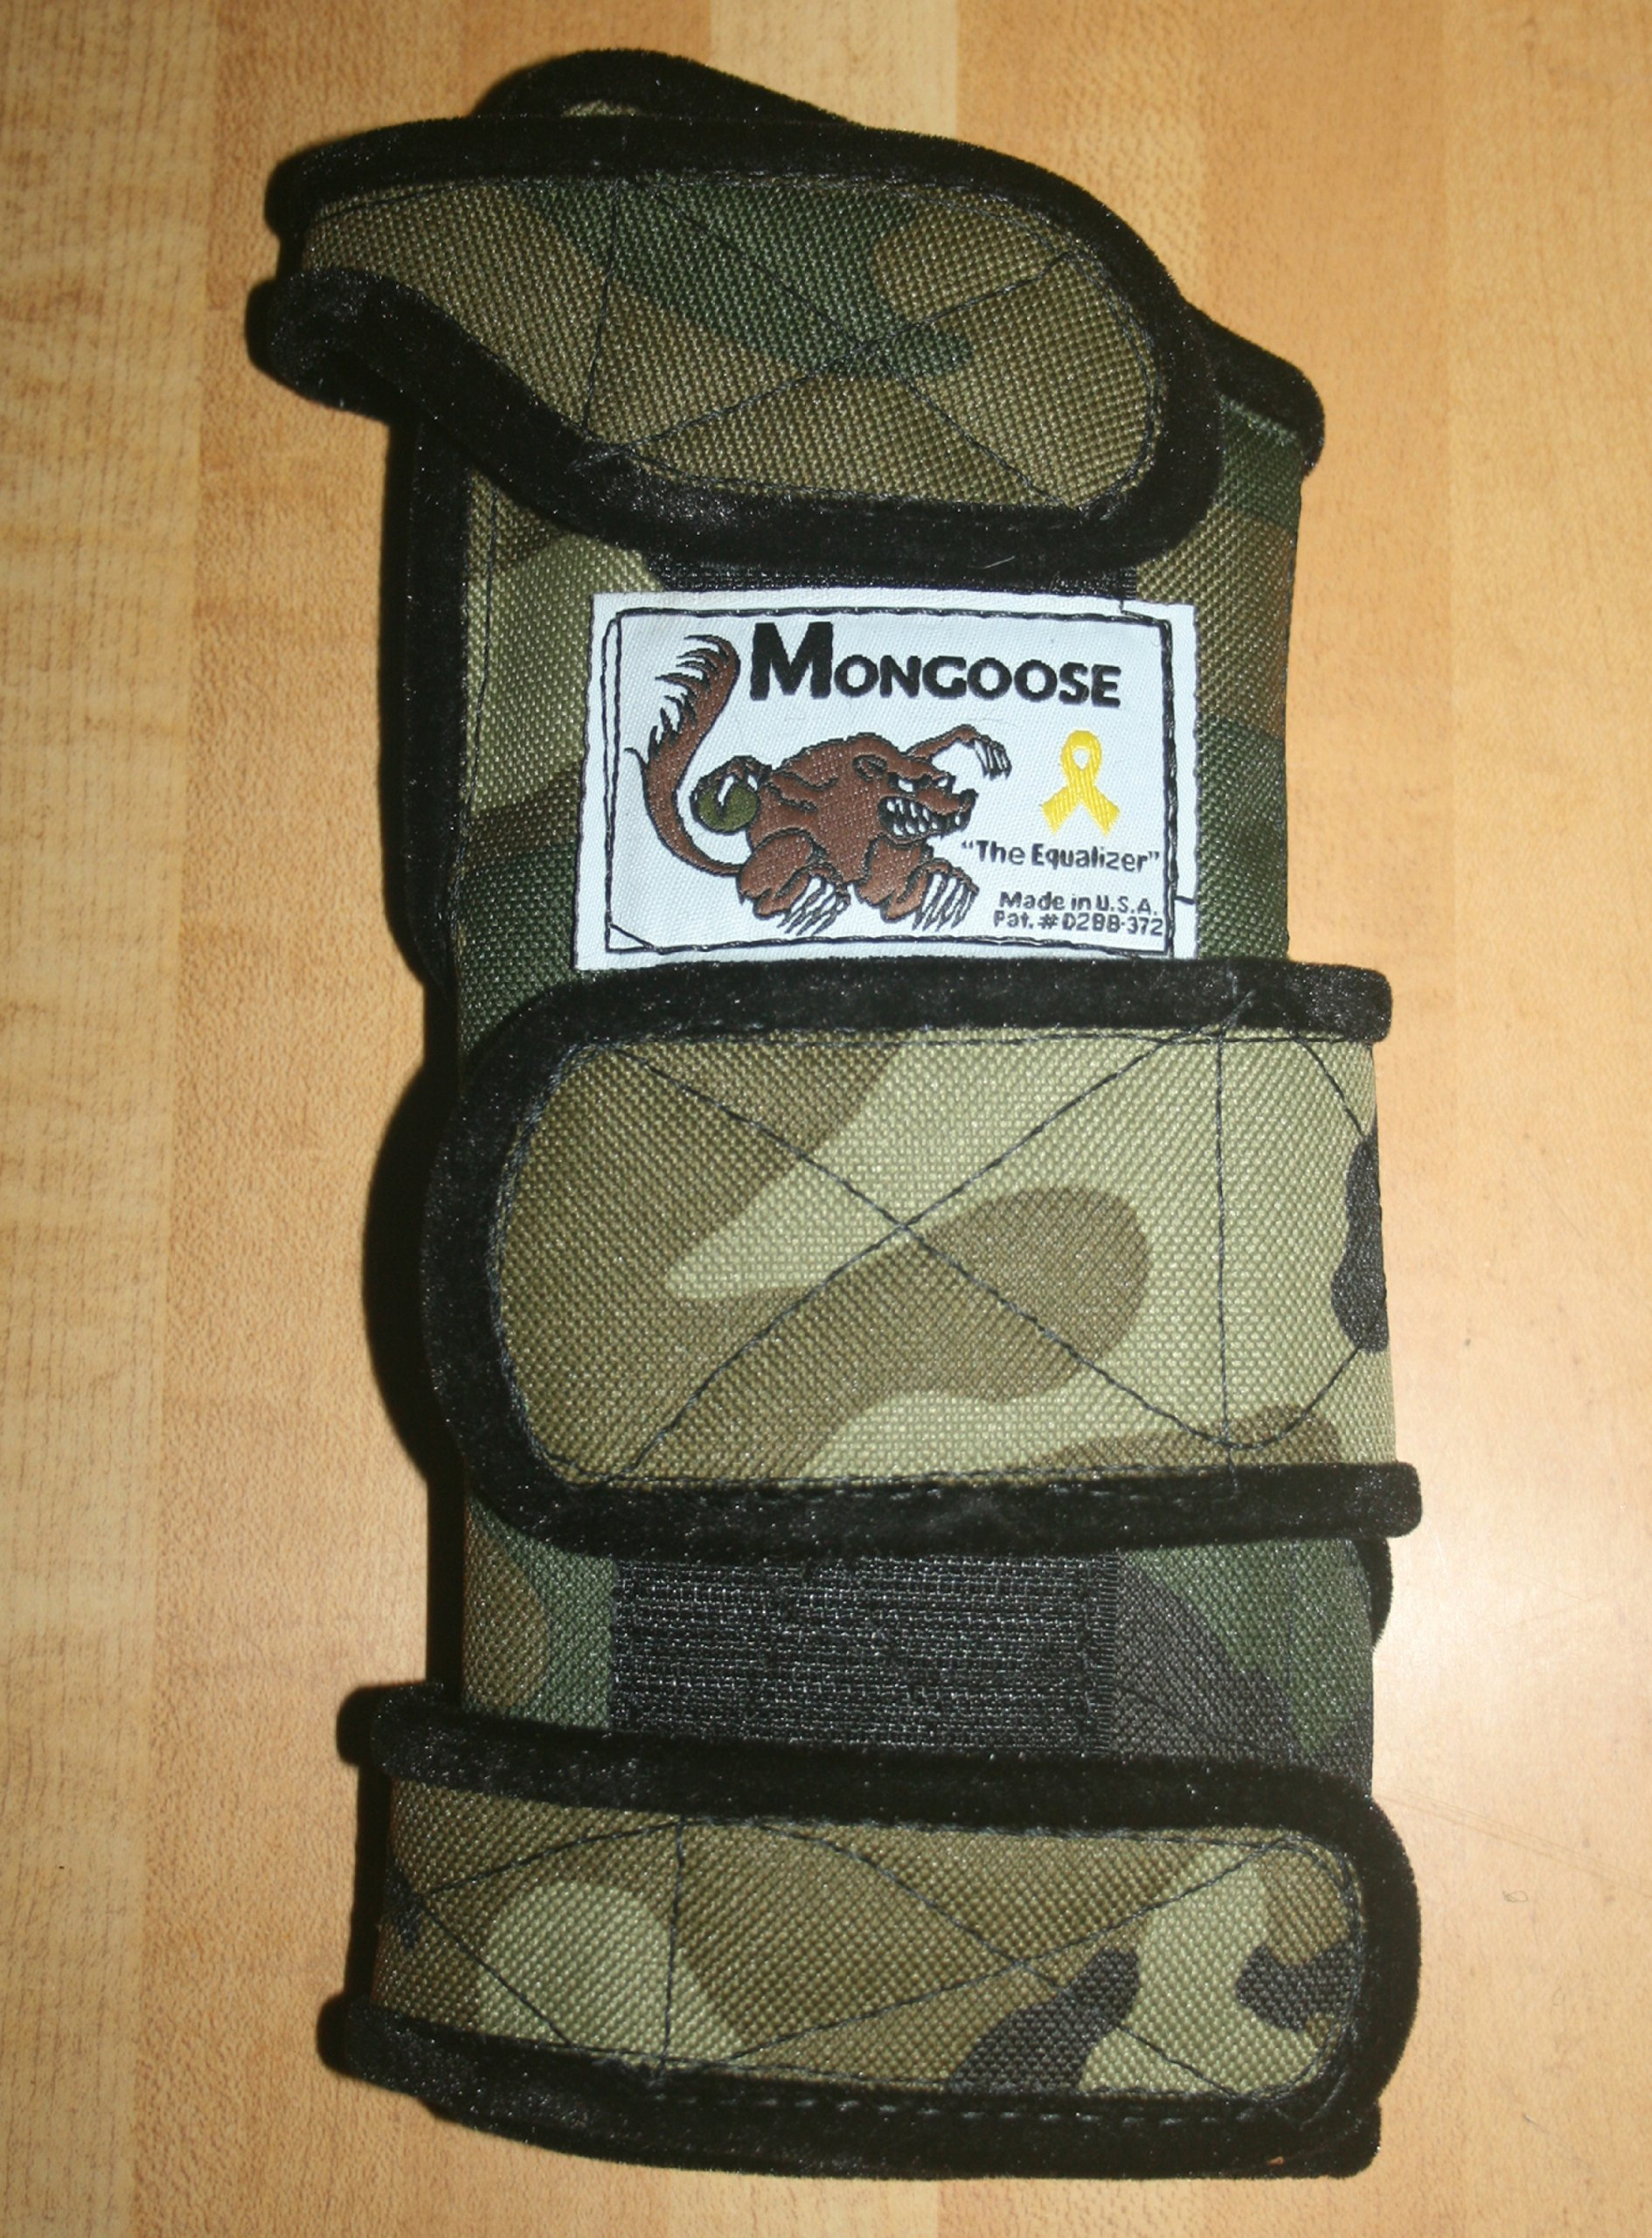 Mongoose ''Equalizer Bowling Wrist Support Right Hand, Small, Camo